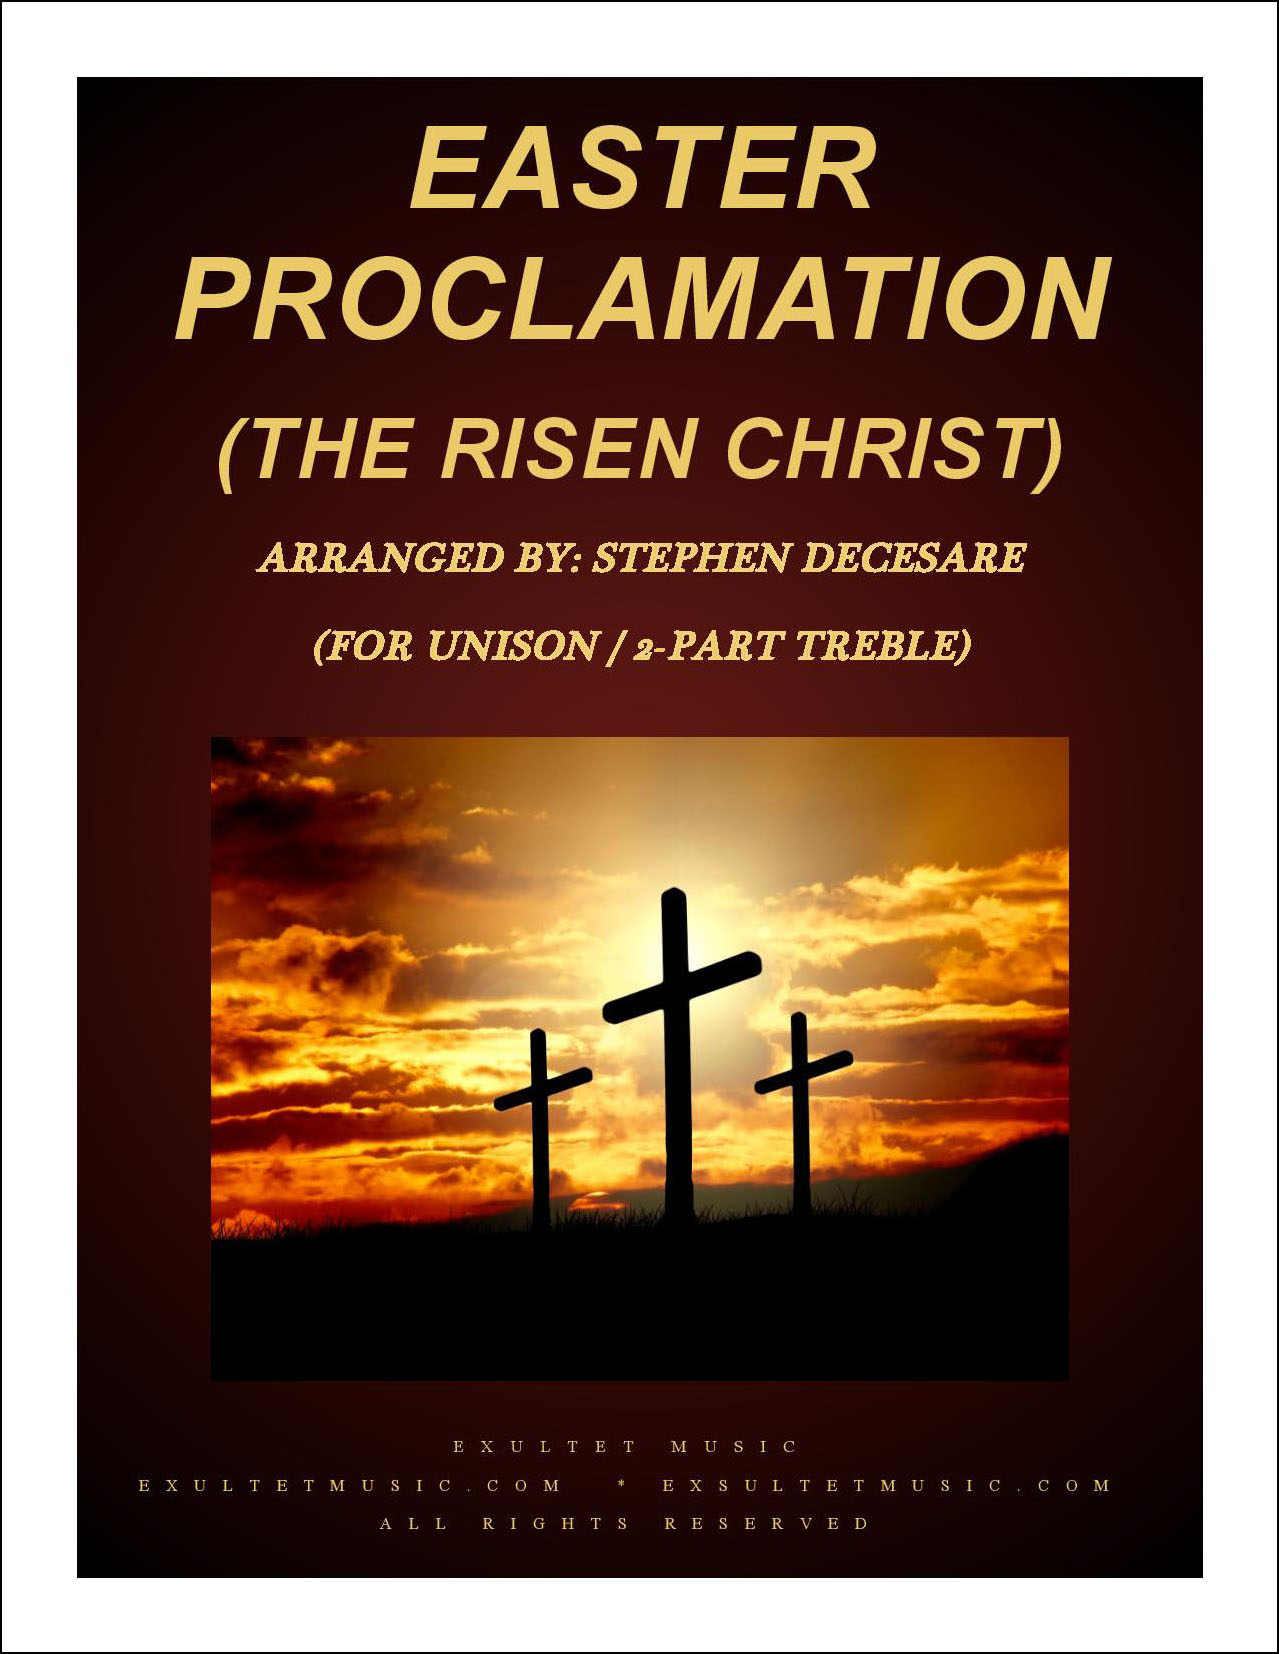 Easter Proclamation The Risen Christ